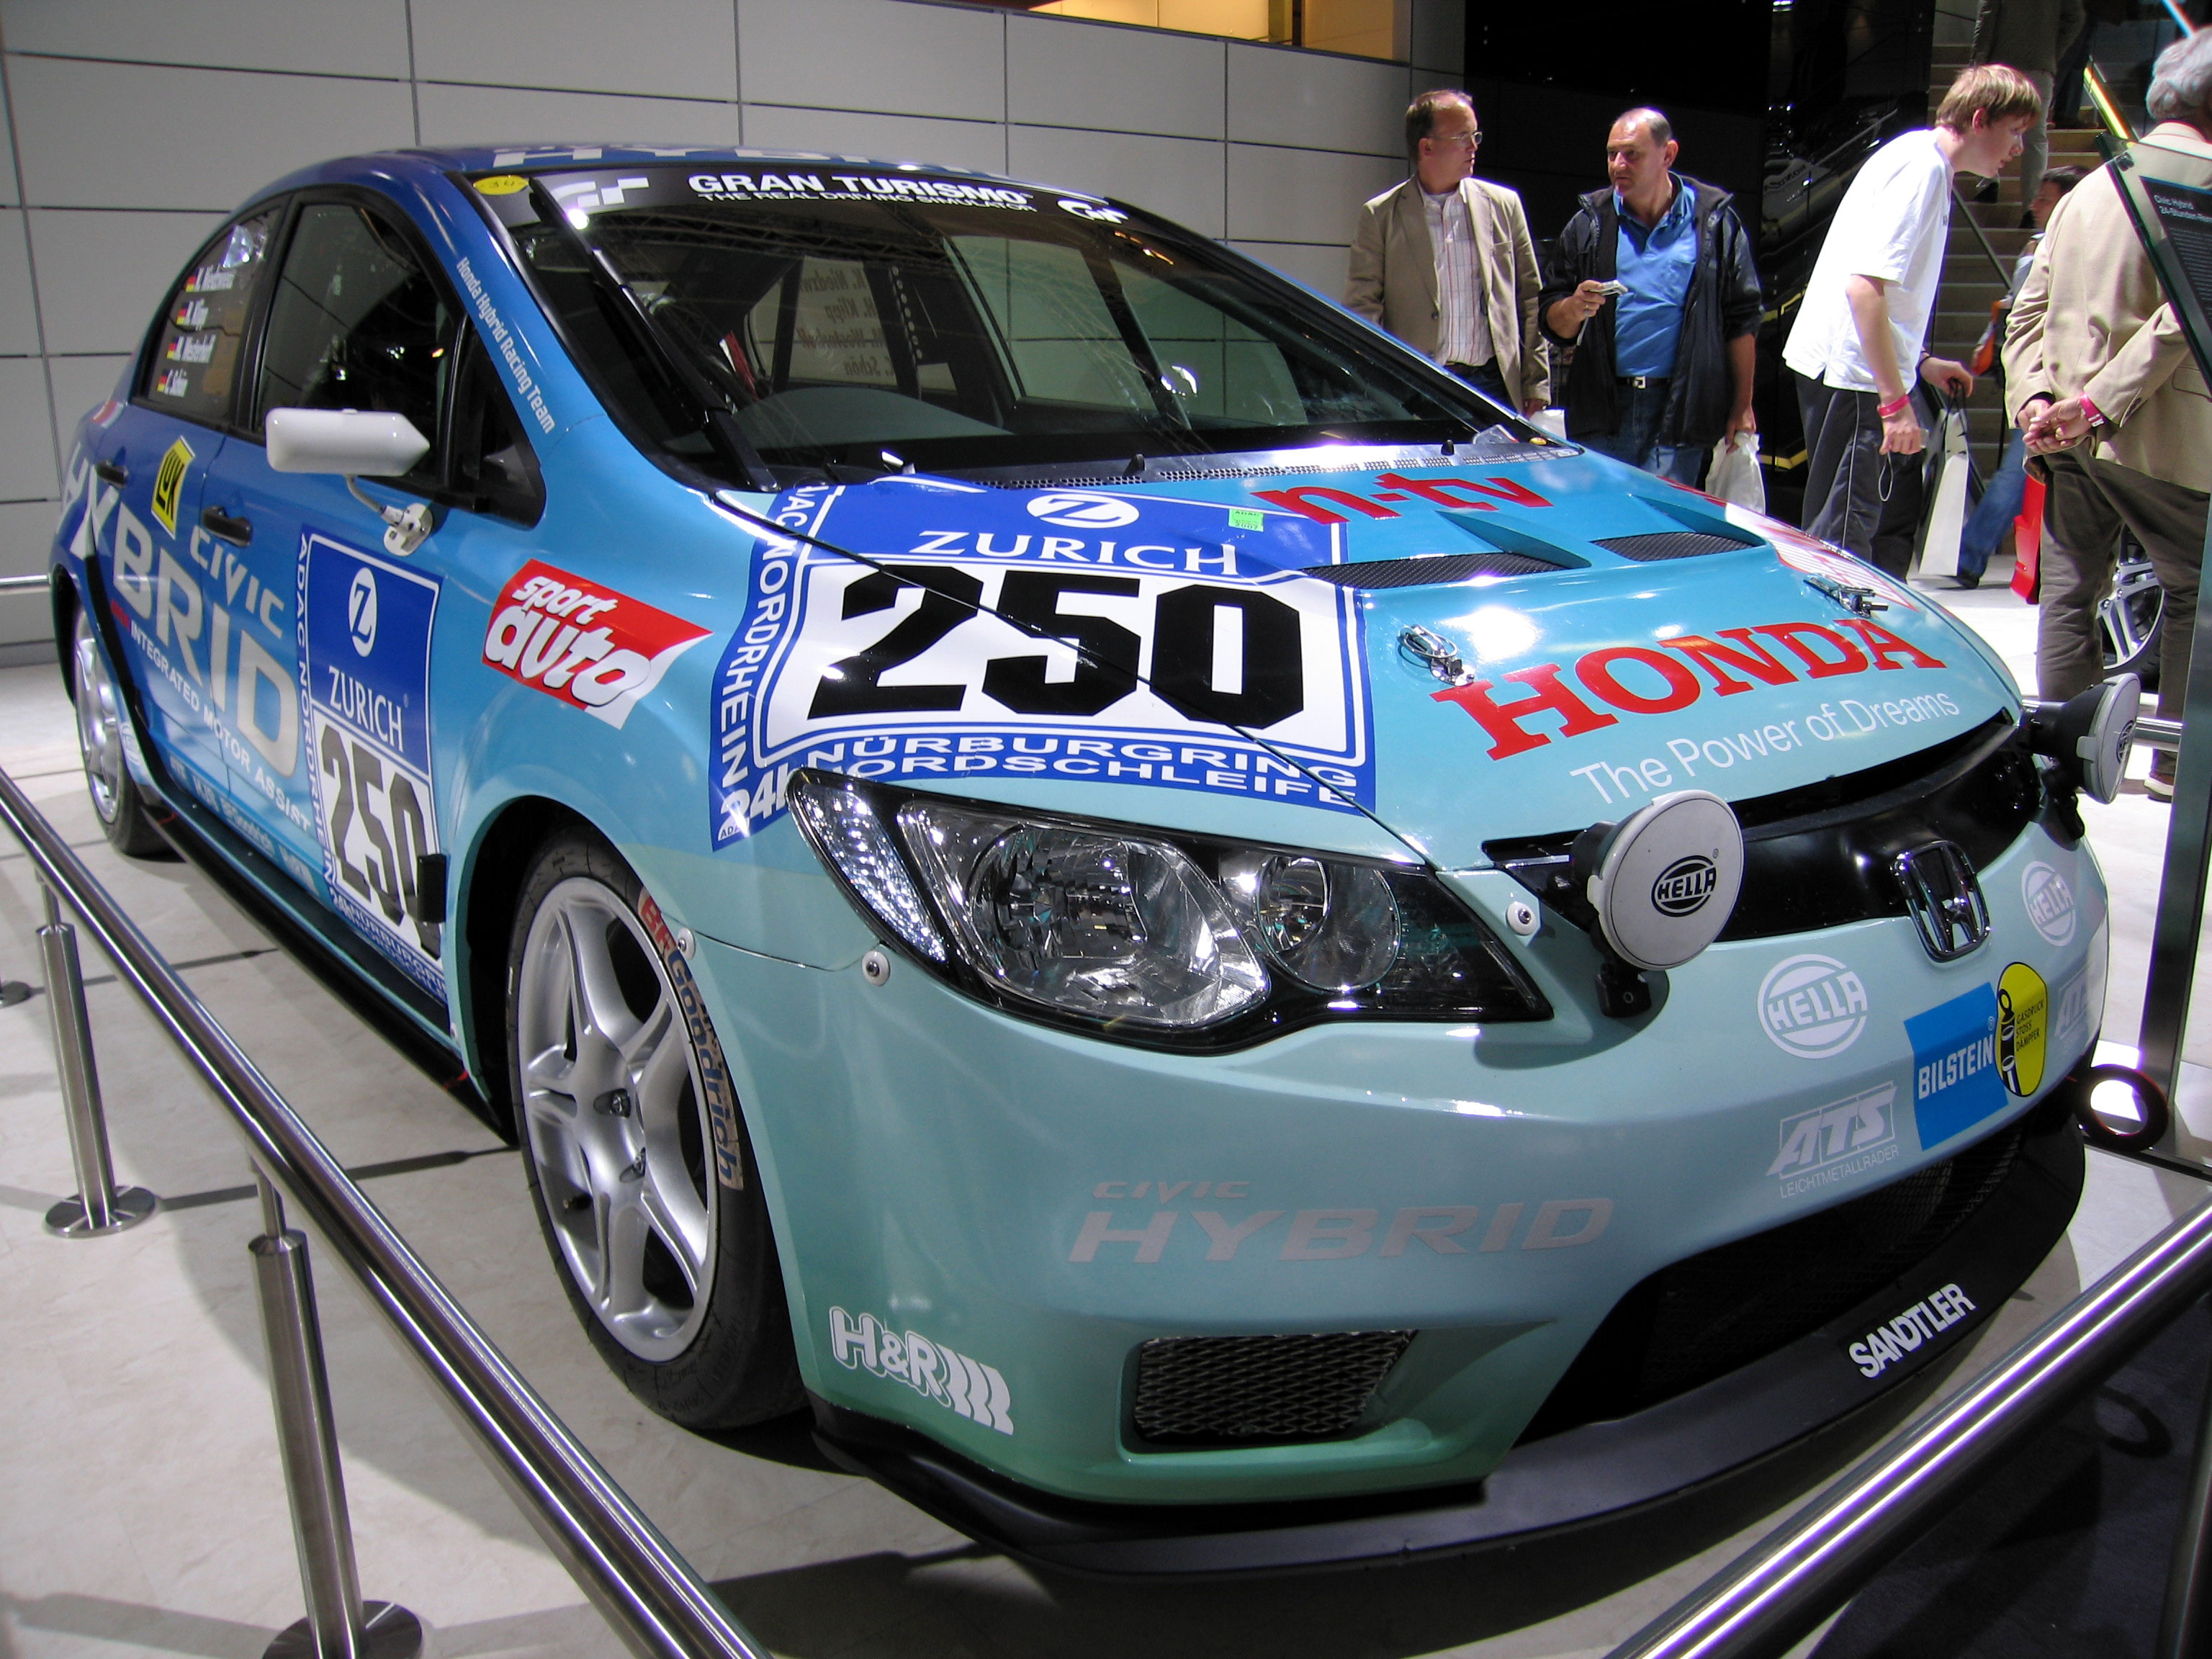 Honda Civic Hybrid | galleryhip.com - The Hippest Galleries!